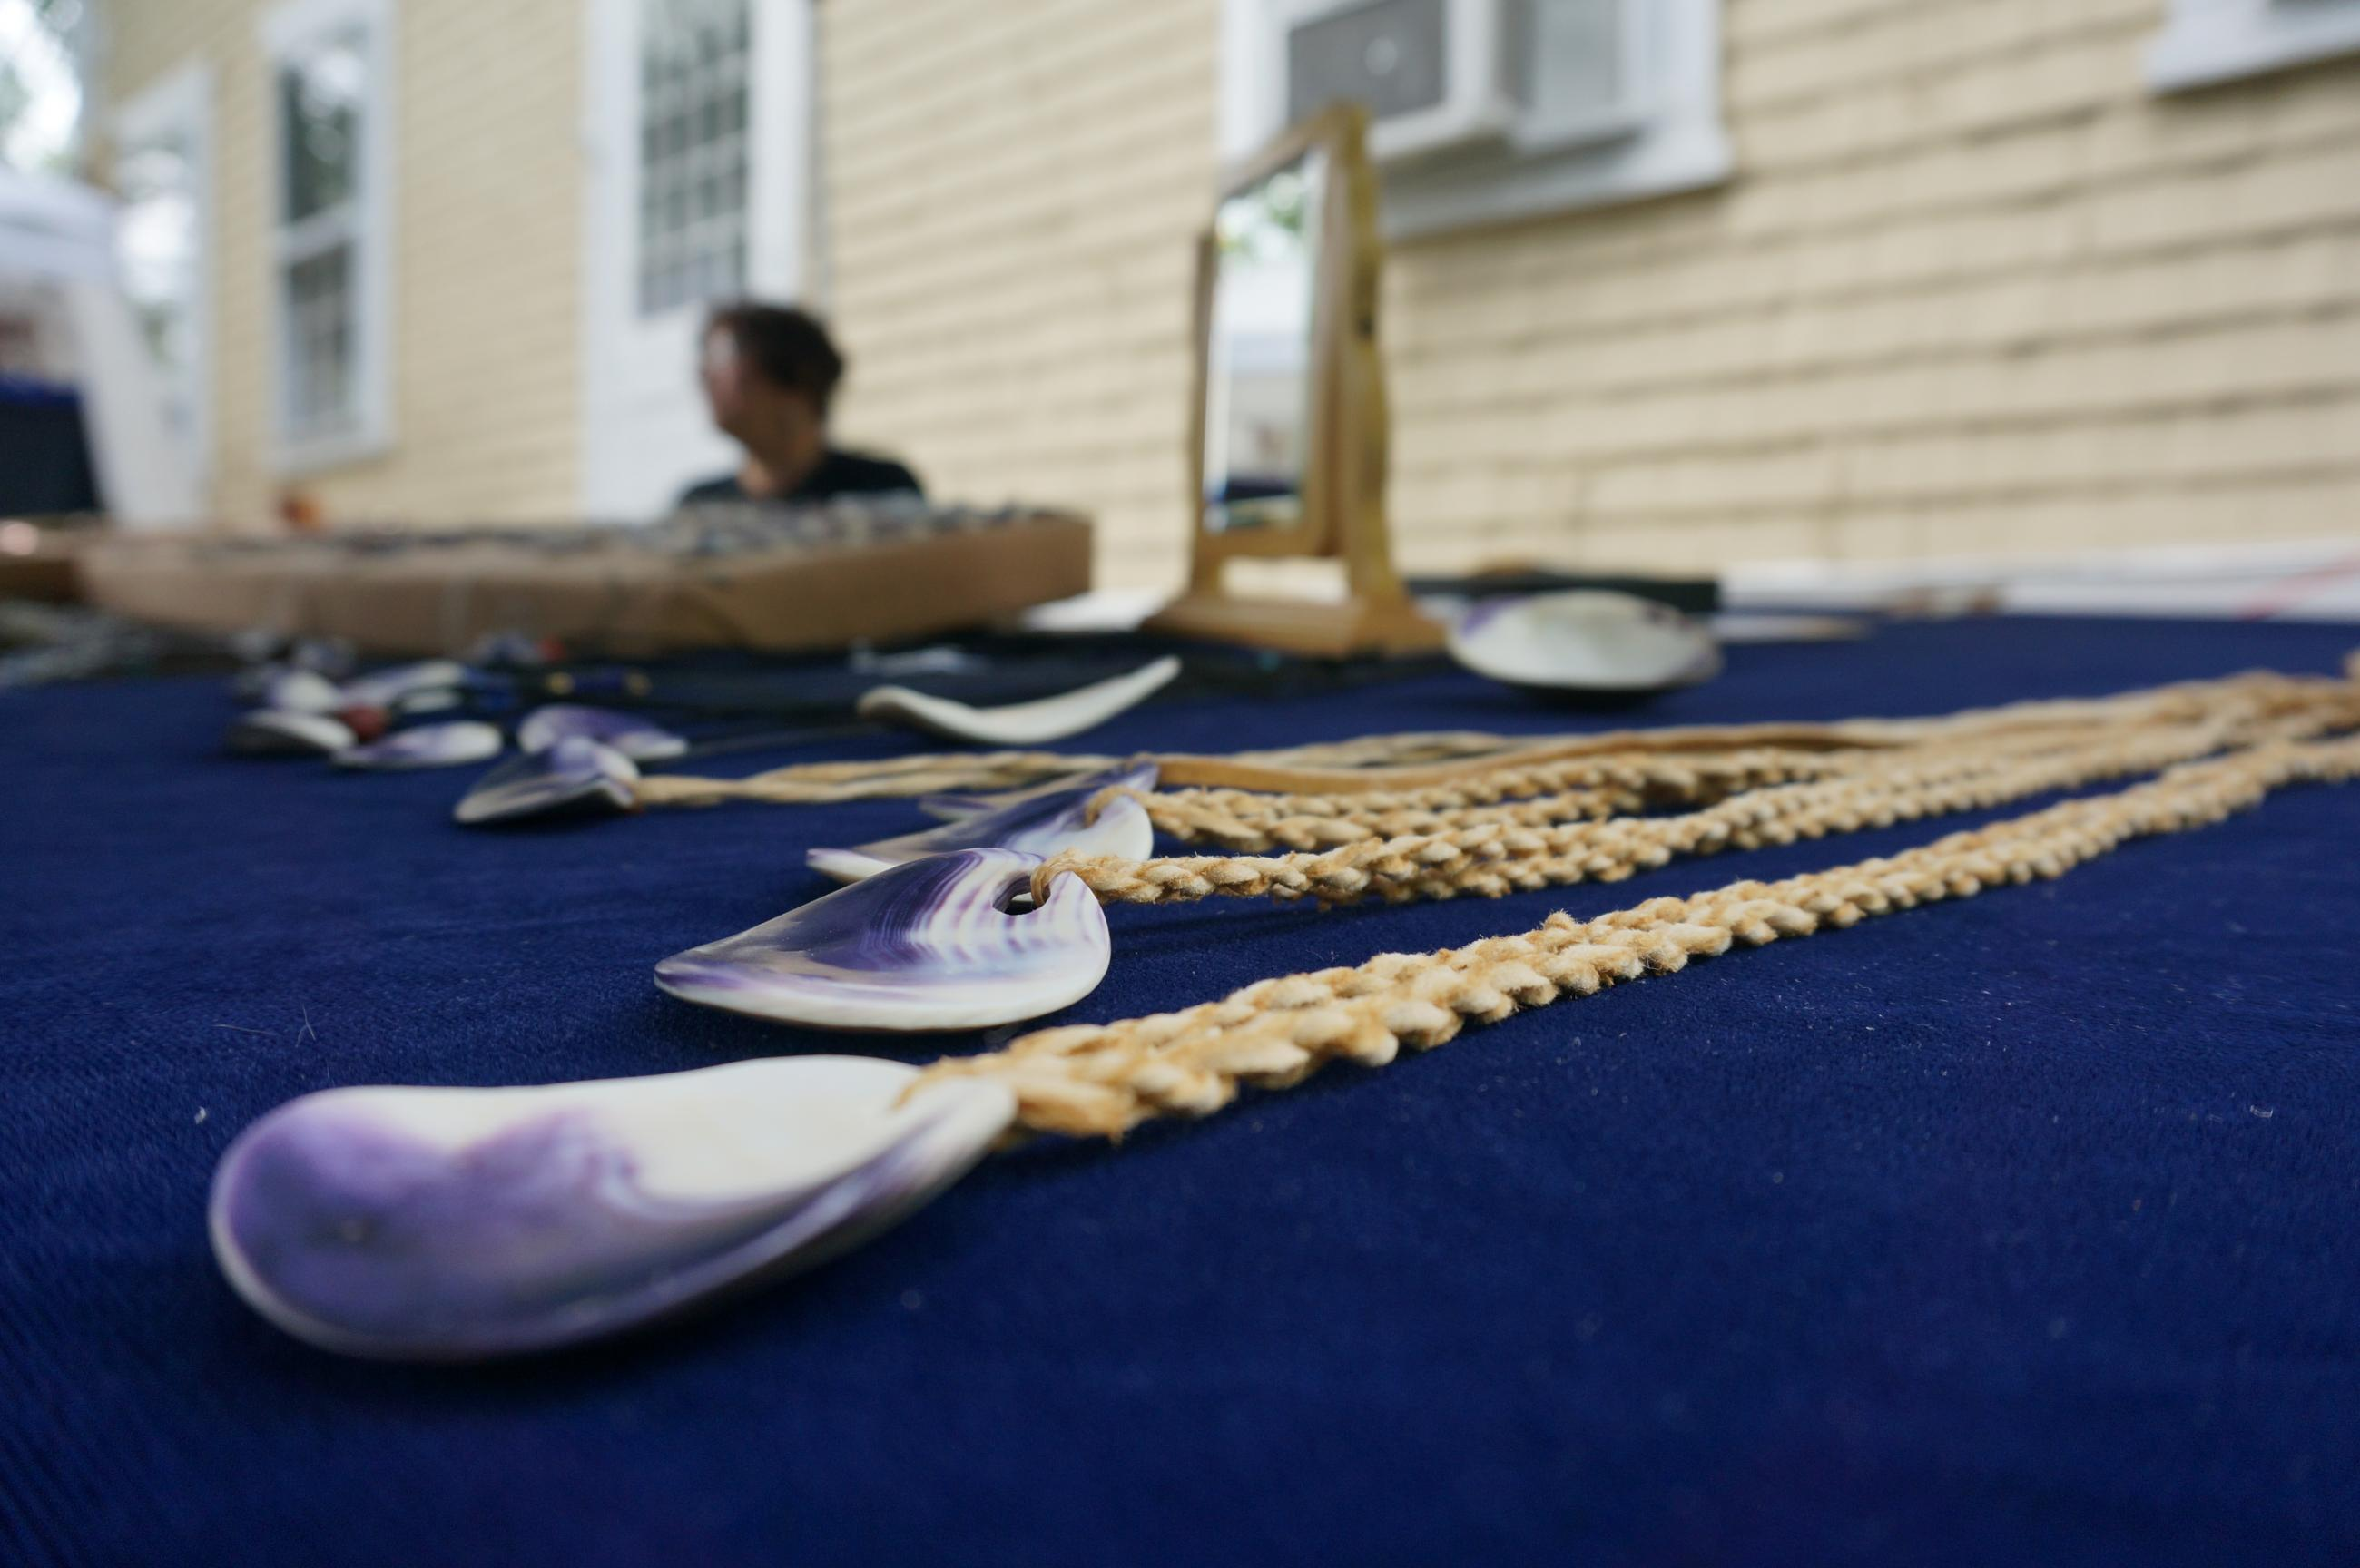 Boston to Welcome Ancient Traditions Showcased in Rare Handwoven ...